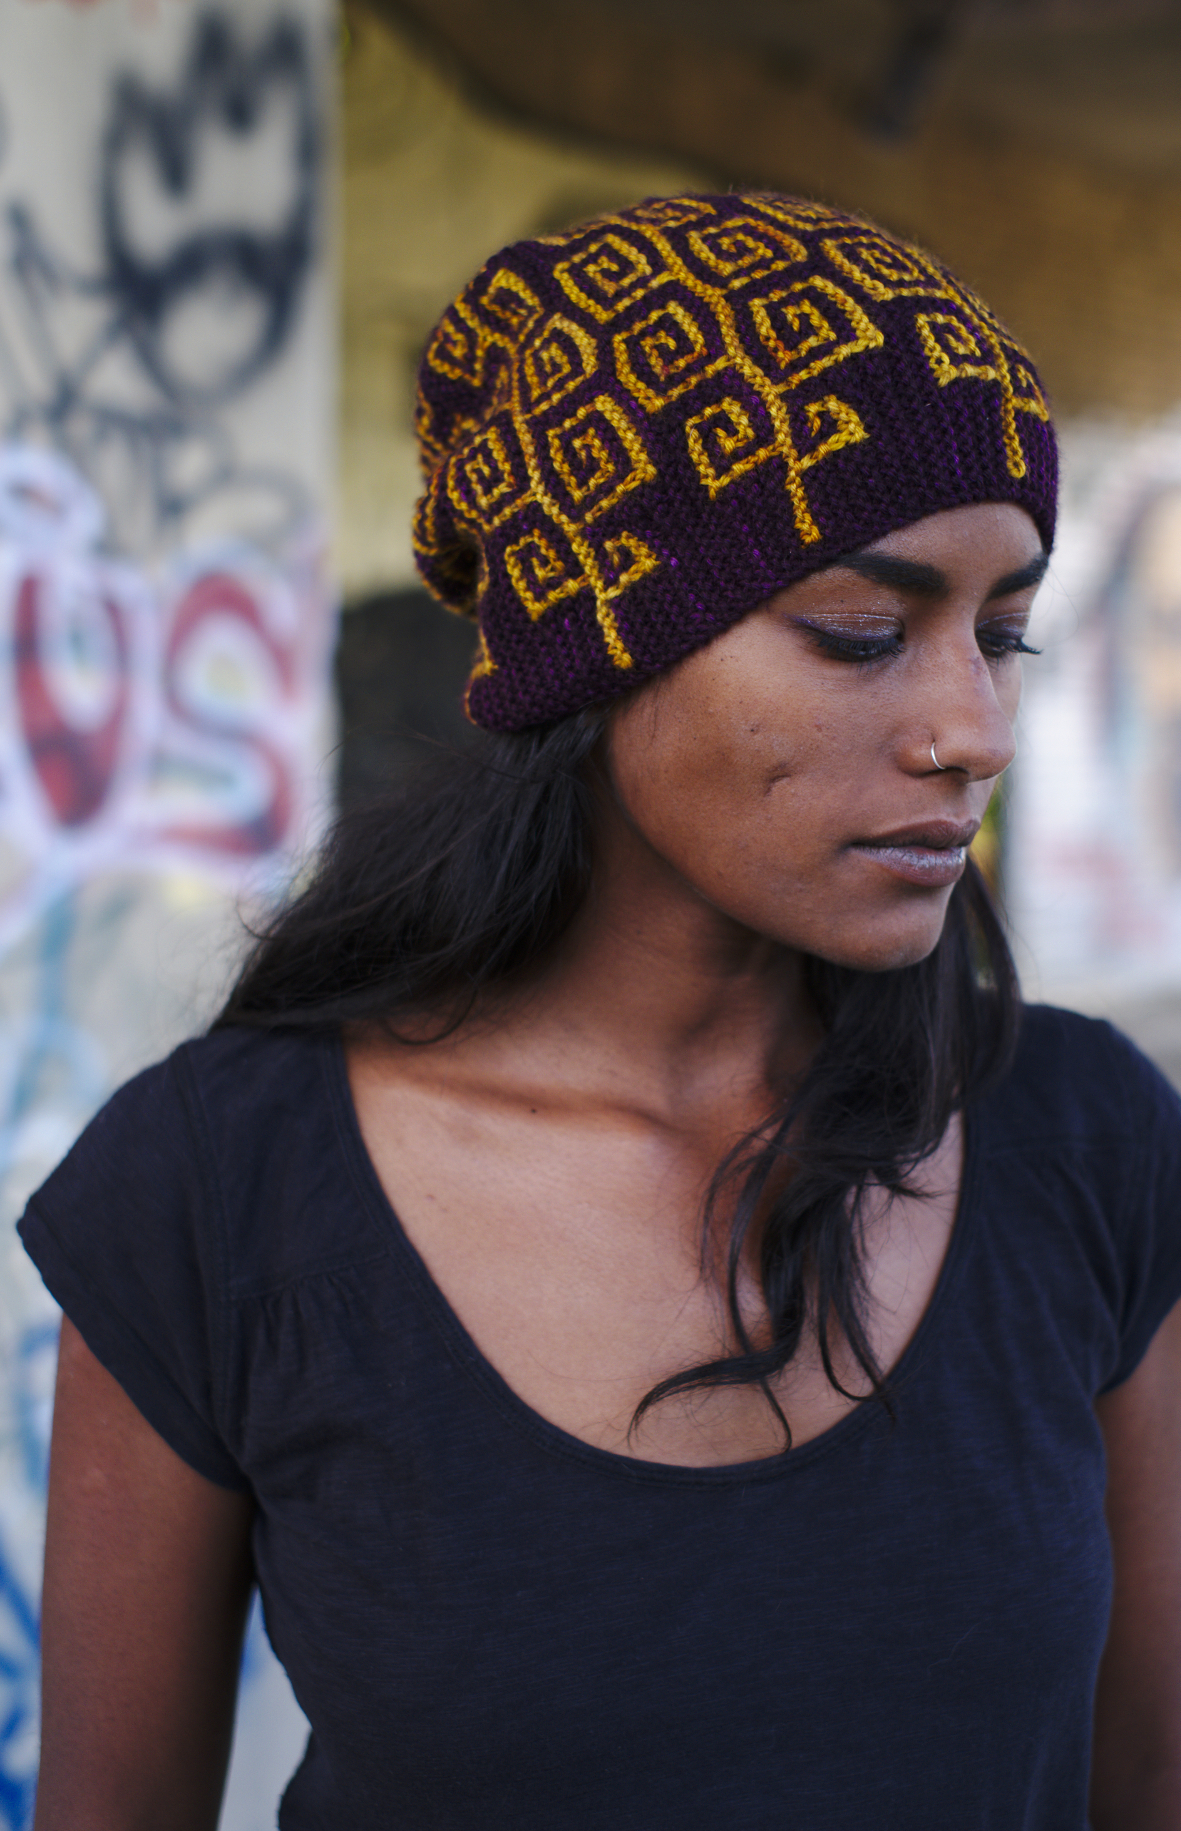 Uprising sideways knit mosaic slipped stitch colourwork Hat hand knitting pattern for DK yarn